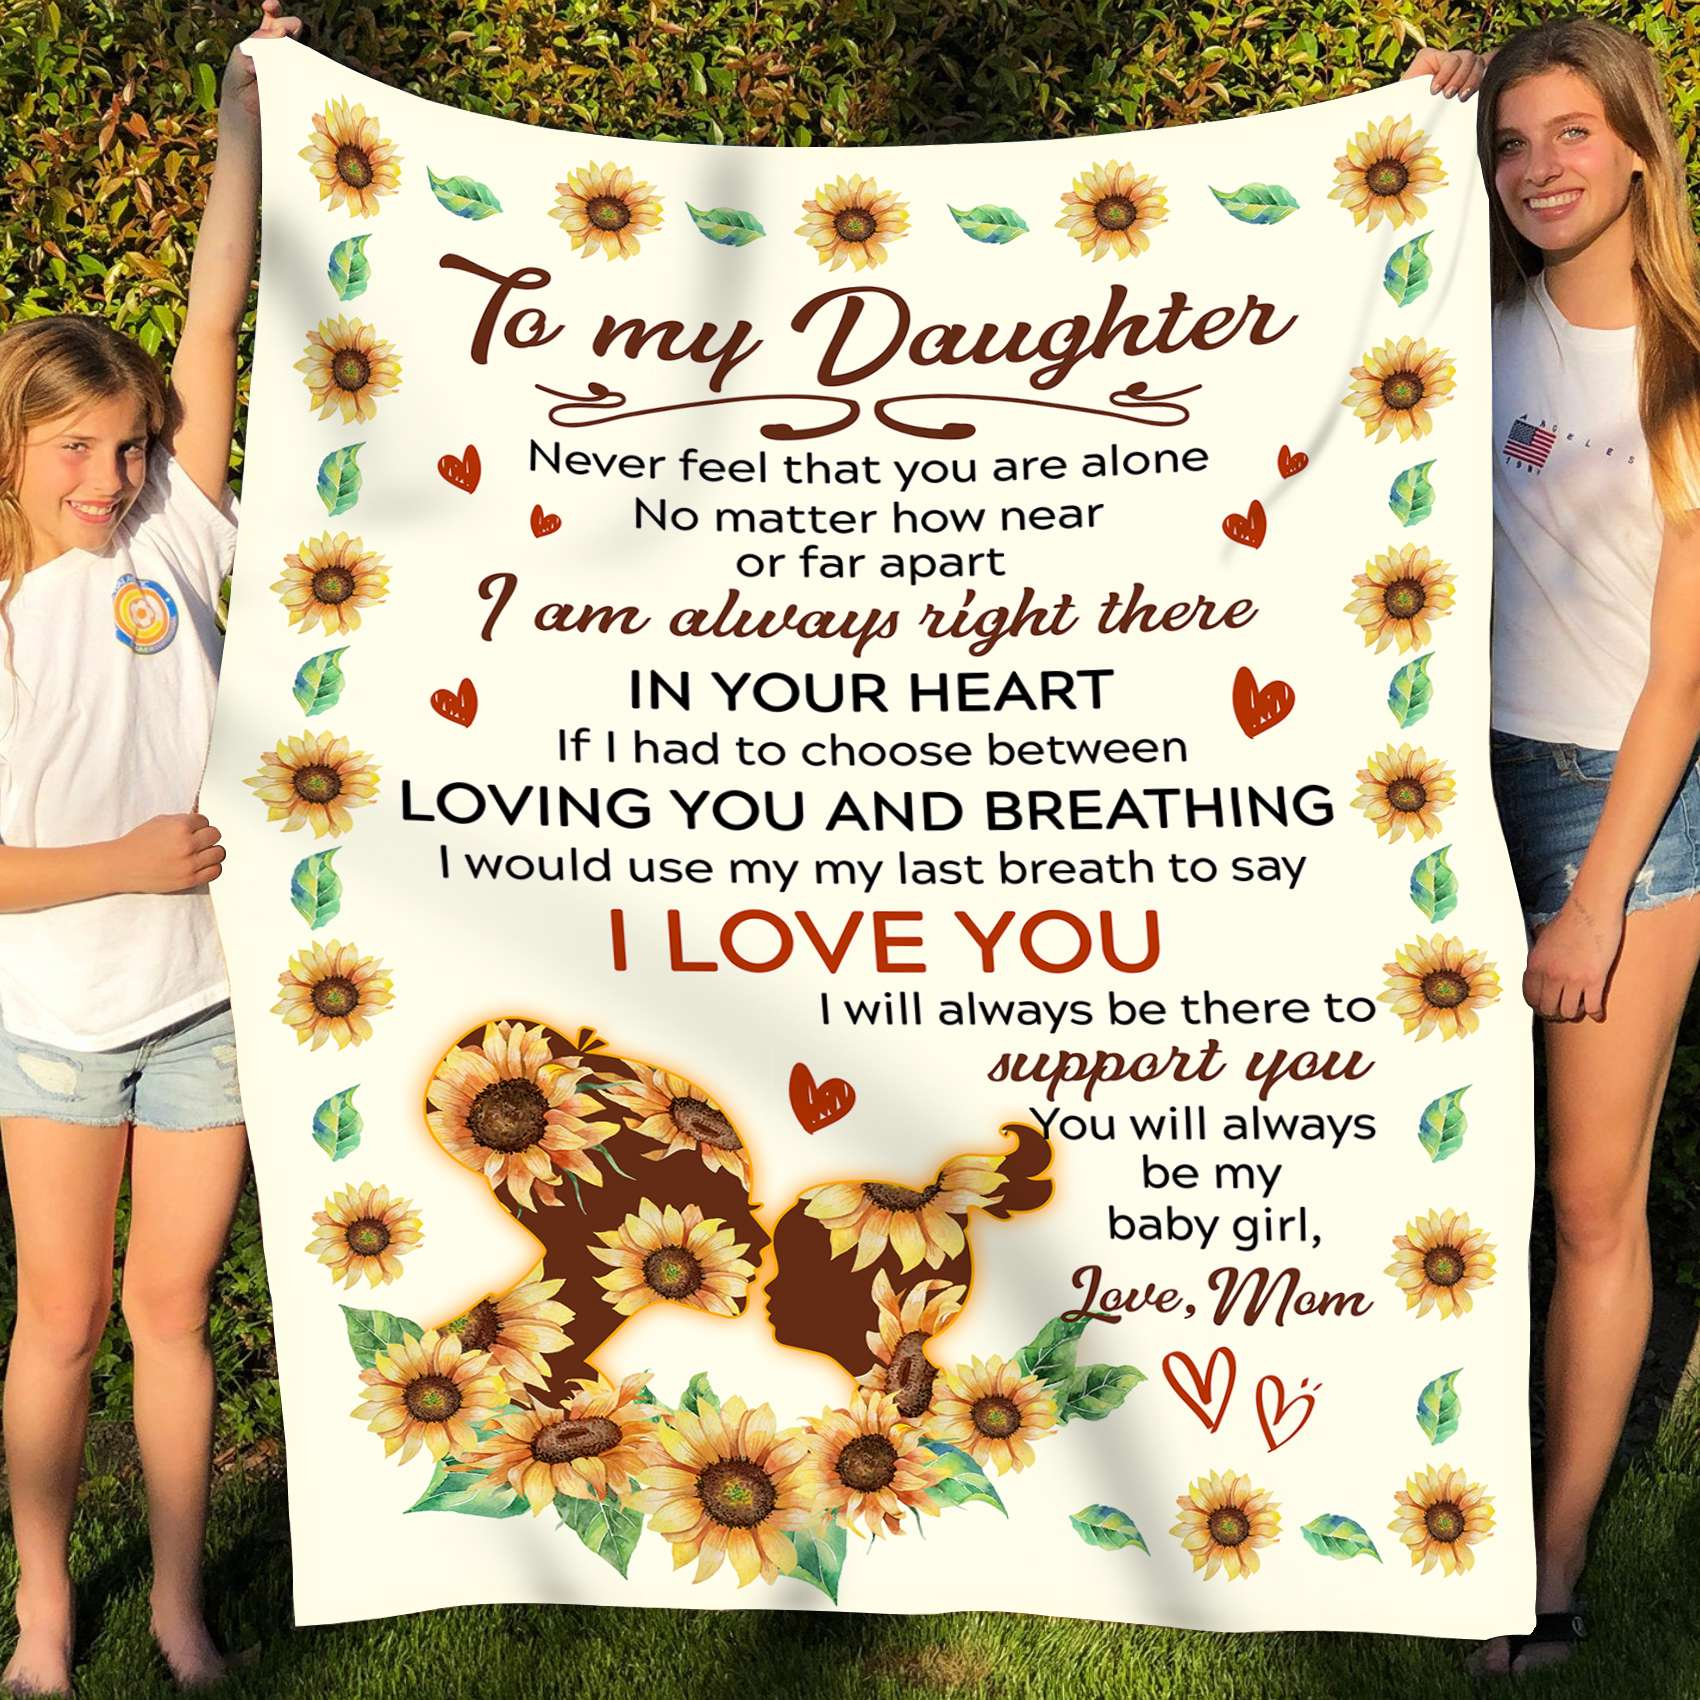 To my daughter fleece blanket - I'm always right there in your heart - Gift for daughter from mother - Birthday gifts - 806